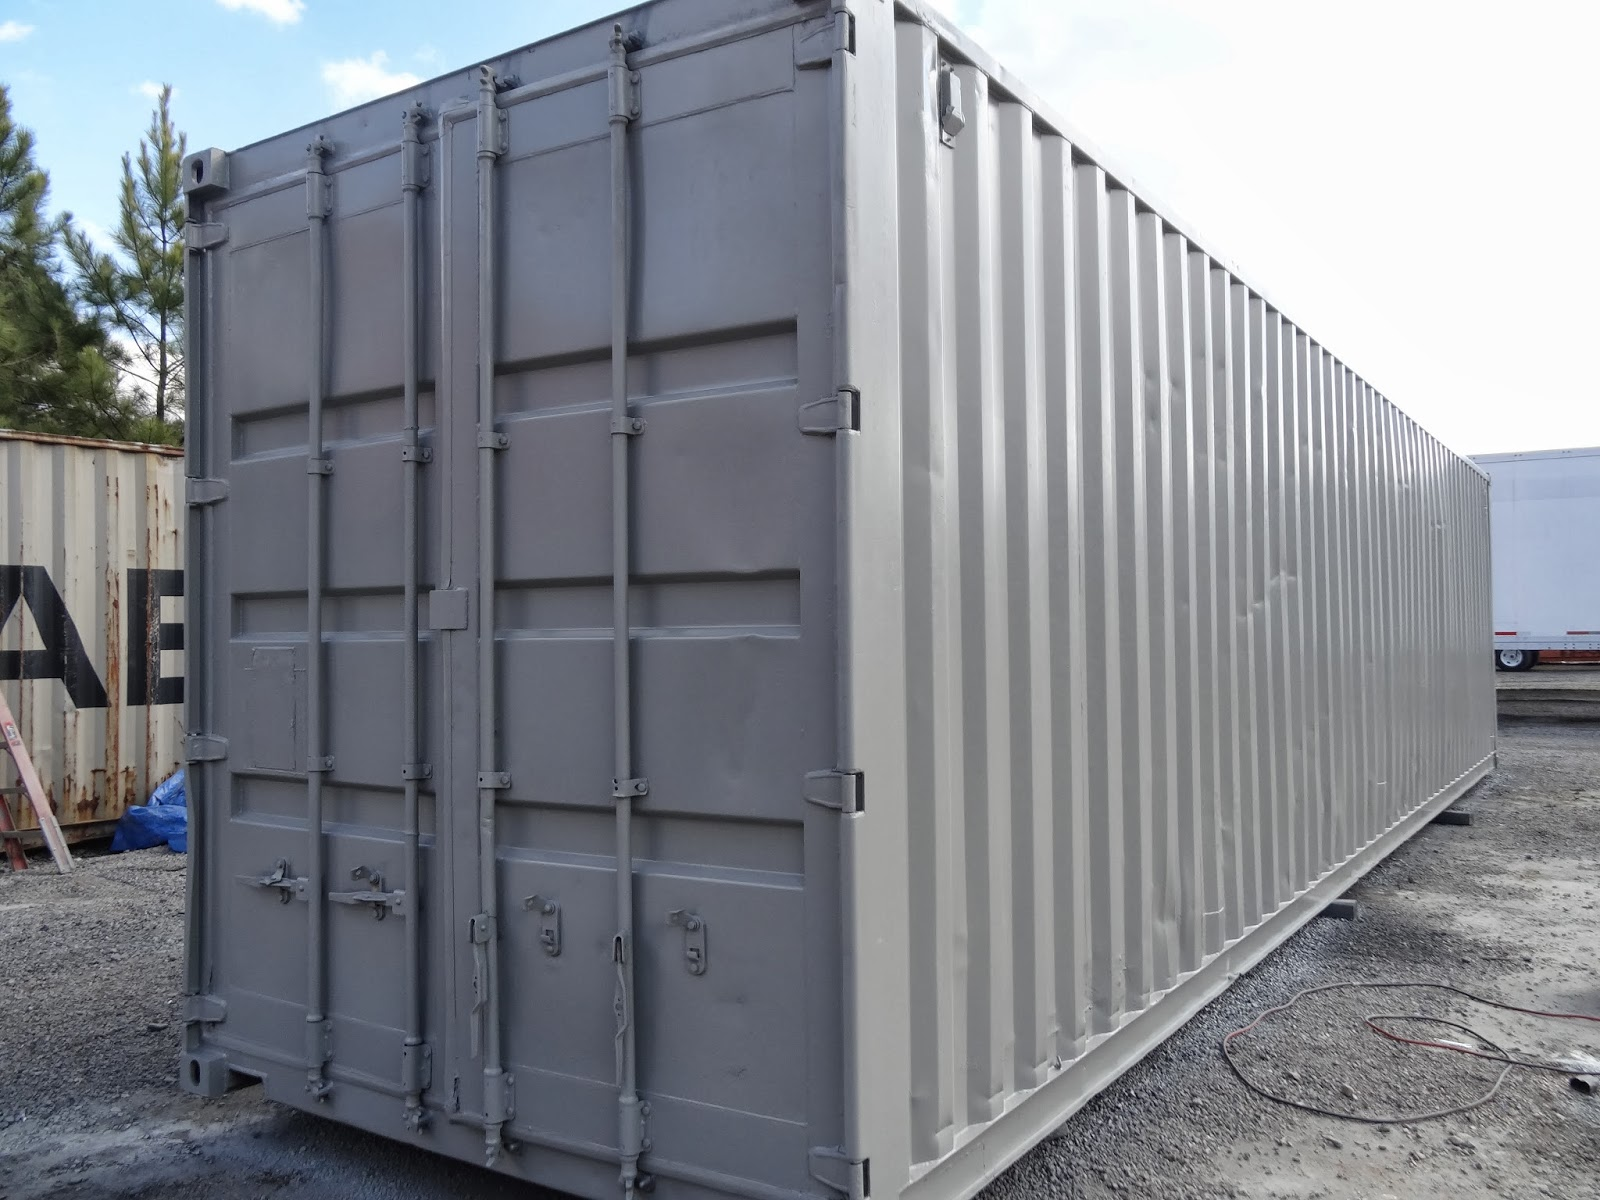 Used Shipping Containers For Storage Containers...Good Idea?